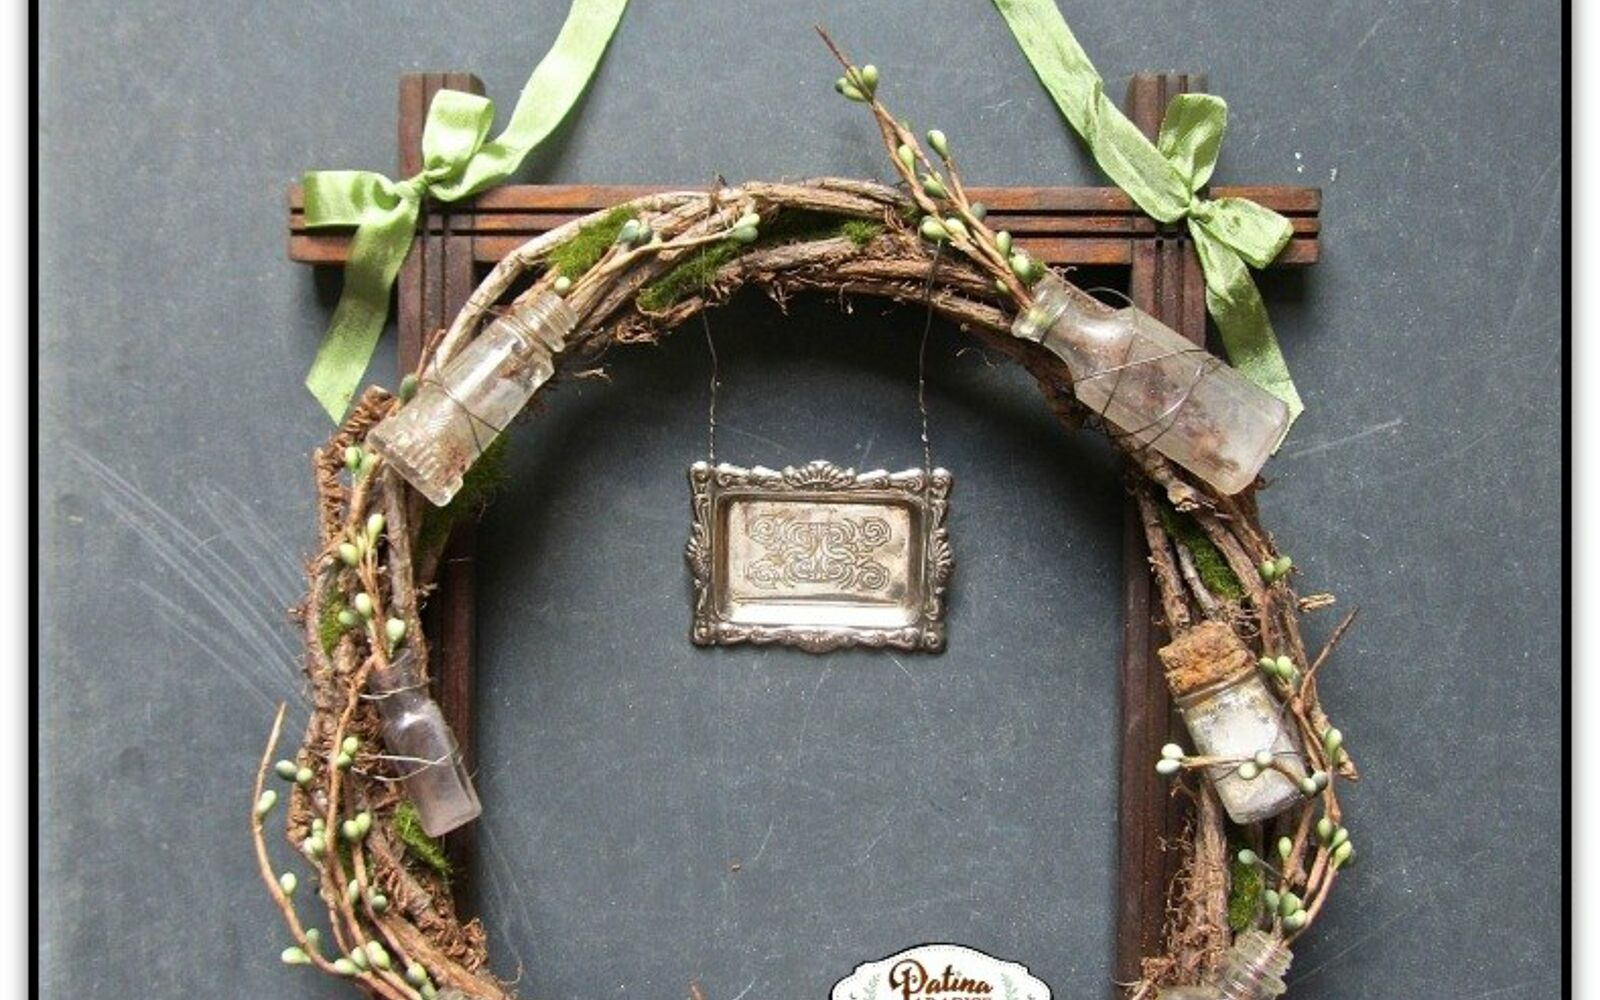 s 17 tricks to make a gorgeous wreath in half the time, Design A Rustic Appearance With Bottles